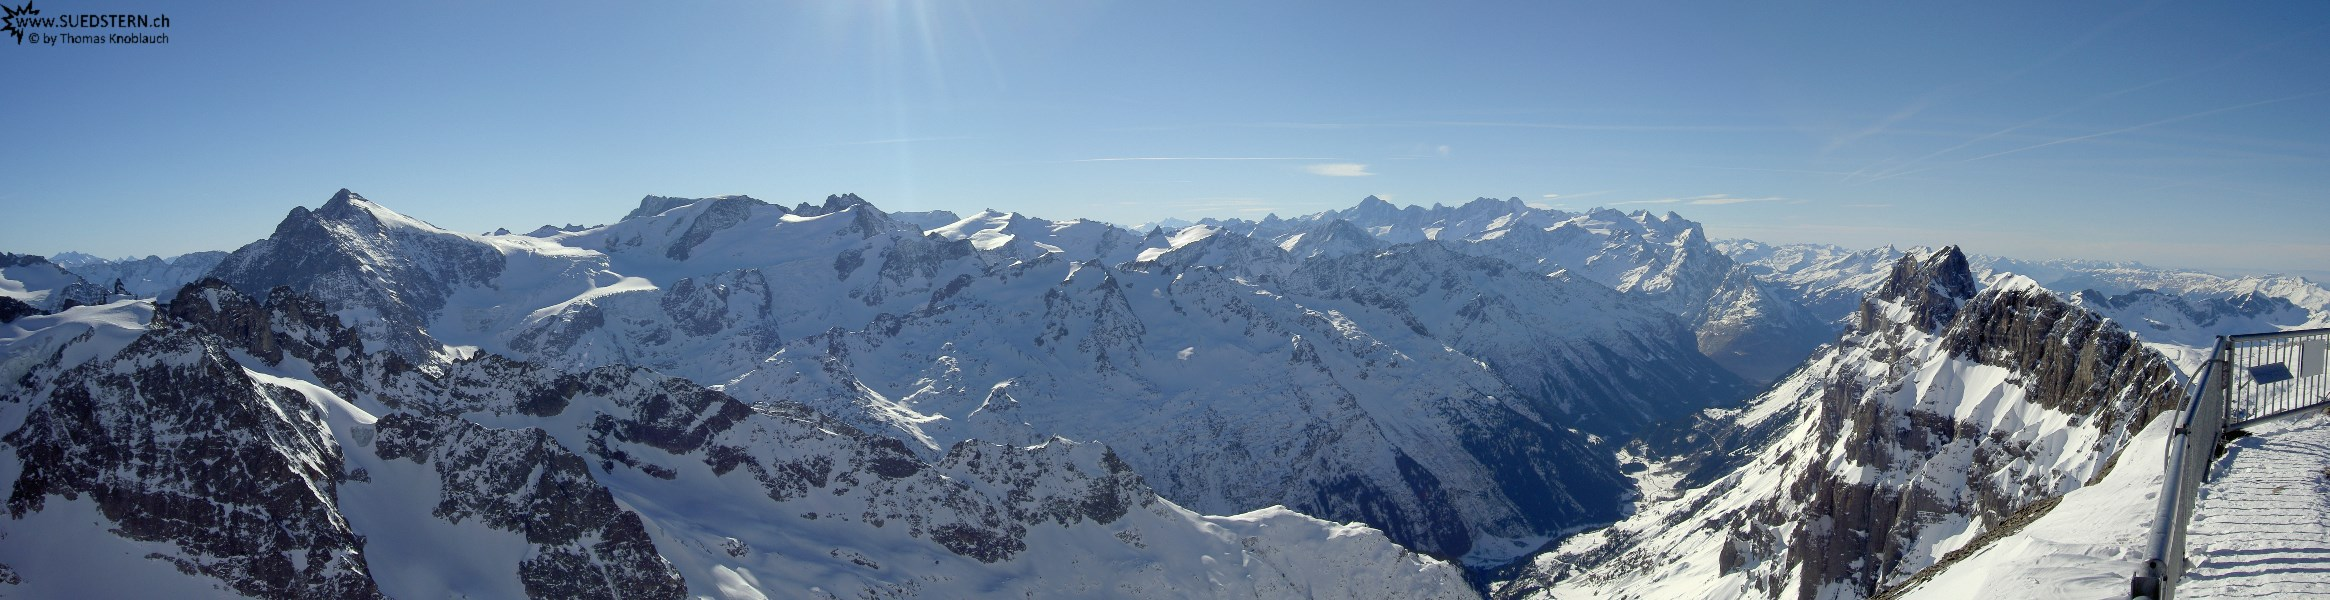 2008-01-29 - Panorama of Bernese Alps seen from Titlis, Switzerland